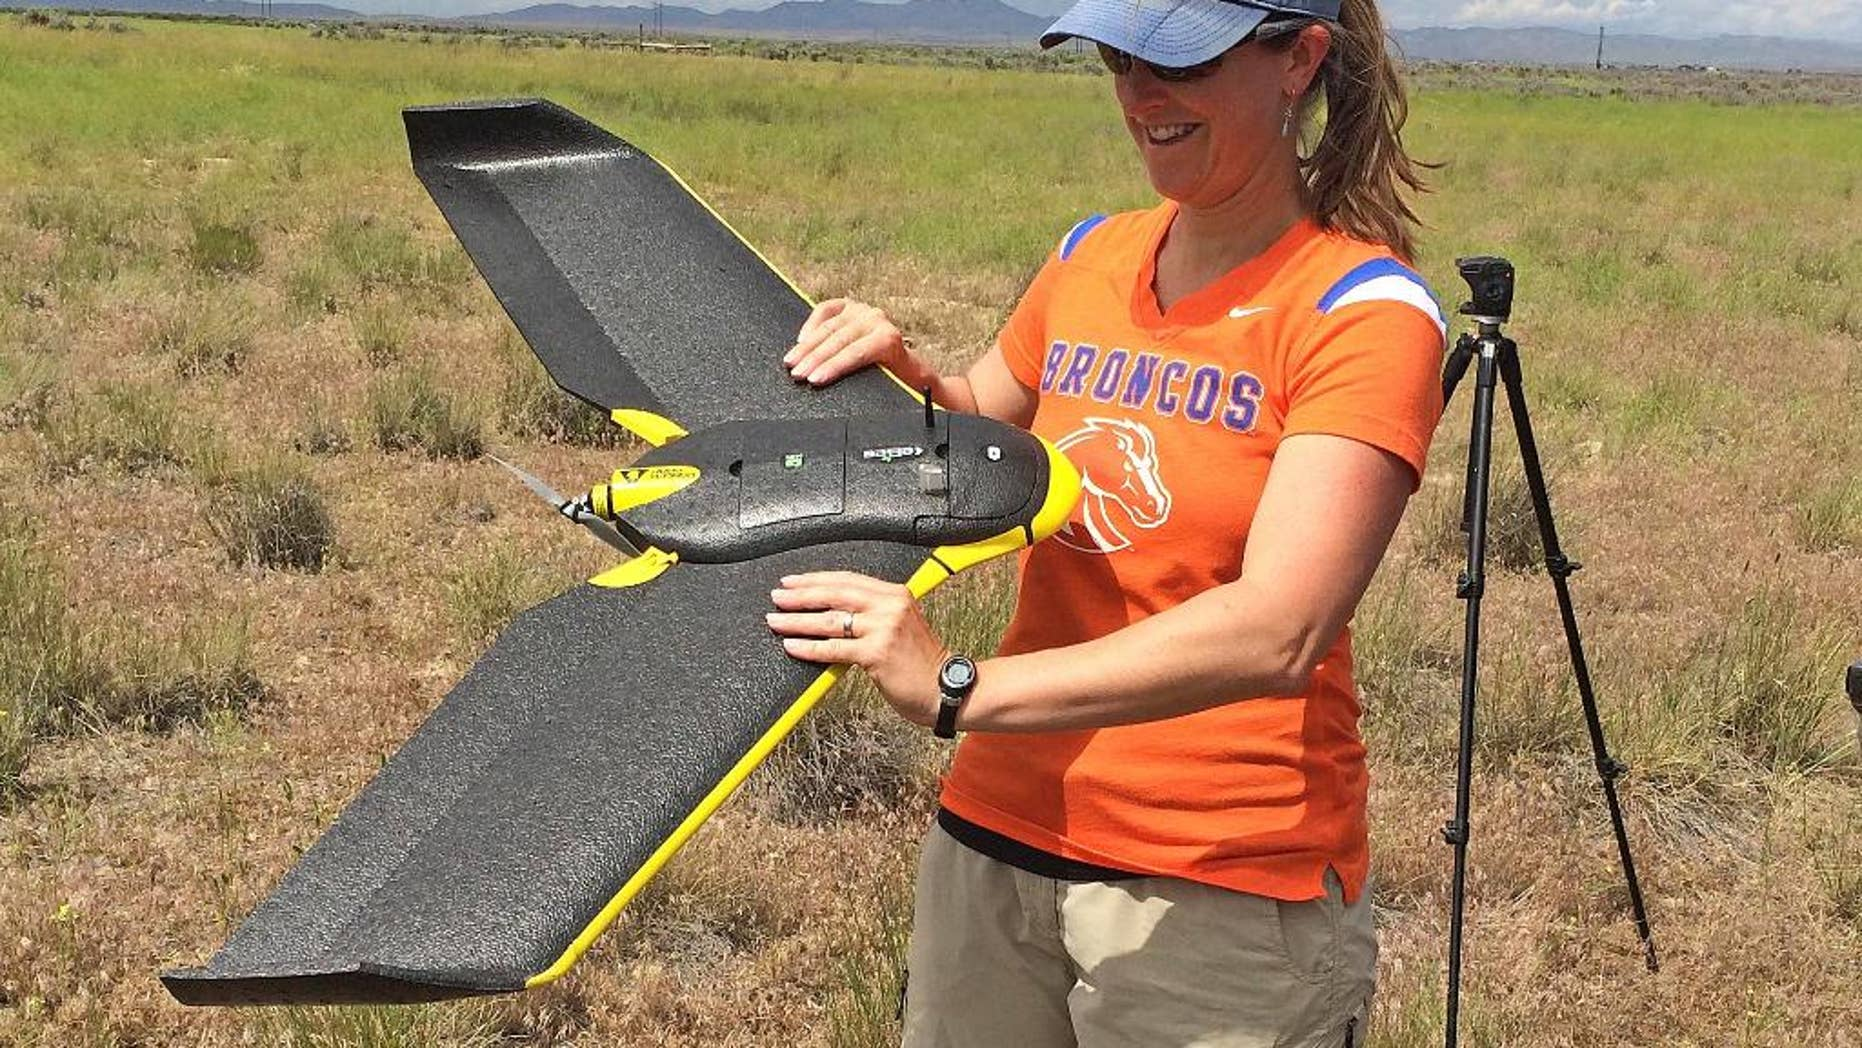 In this photo provided by Jennifer Forbey and taken June 10, 2015, Boise State University Professor Jennifer Forbey examines a drone prior to launch in an area west of Boise, Idaho. Scientists are testing camera-equipped drones in western Idaho to find out if they can identify subspecies of sagebrush as part of a wildfire strategy to help sage grouse and other wildlife across the West. (Chelsea Merriman/Courtesy of Jennifer Forbey via AP)